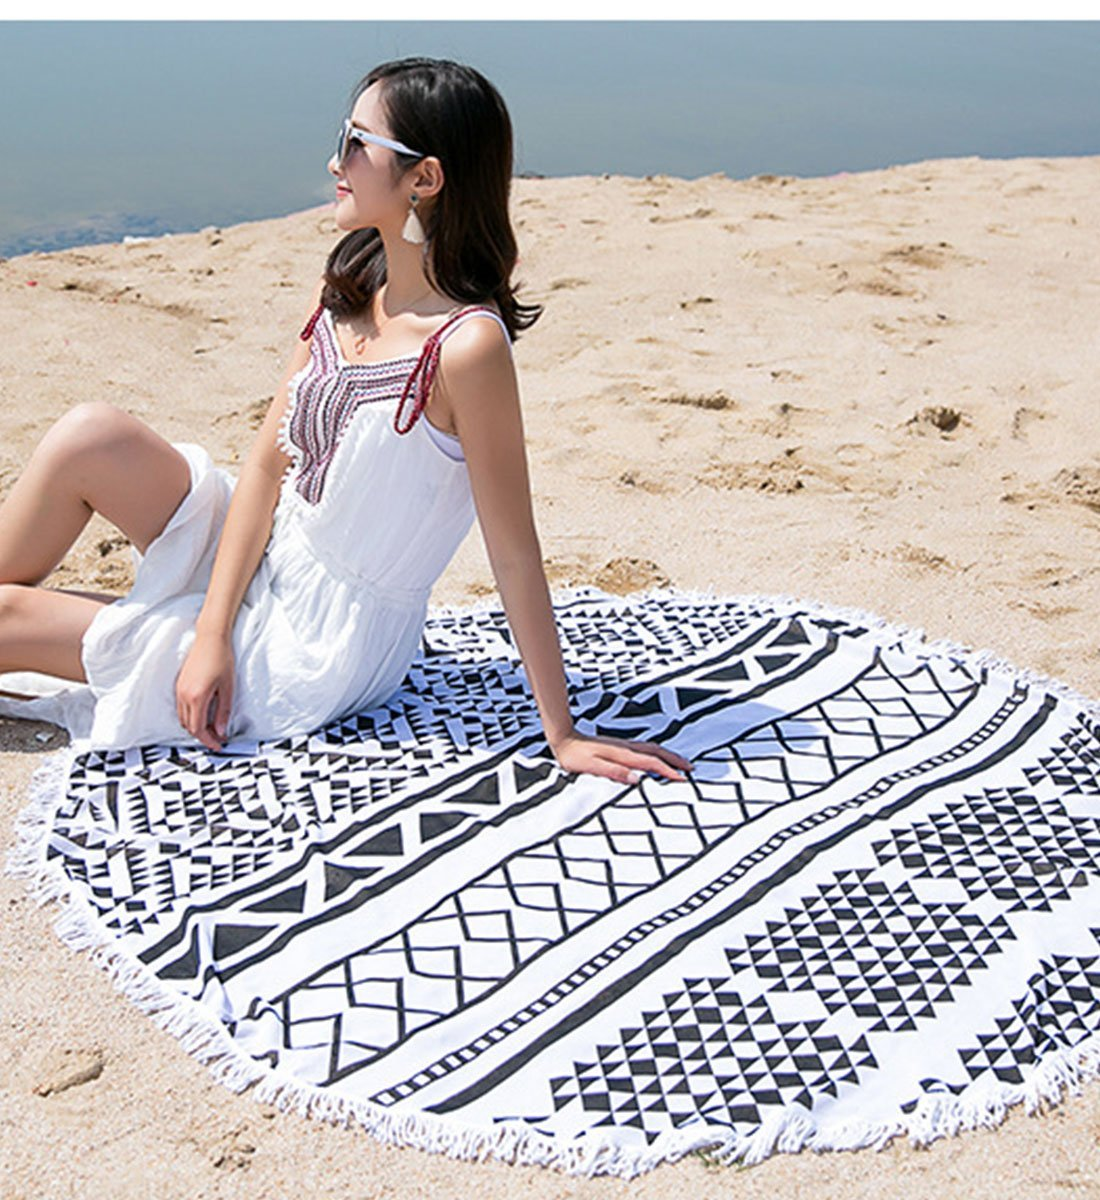 Amazon.com: Black and White Grid Printed Round Beach Mat Lightweight Chiffon Cover Up Dress with Tassel Bohemian Picnic Throw Towel Blanket (Same as Picture): Home & Kitchen